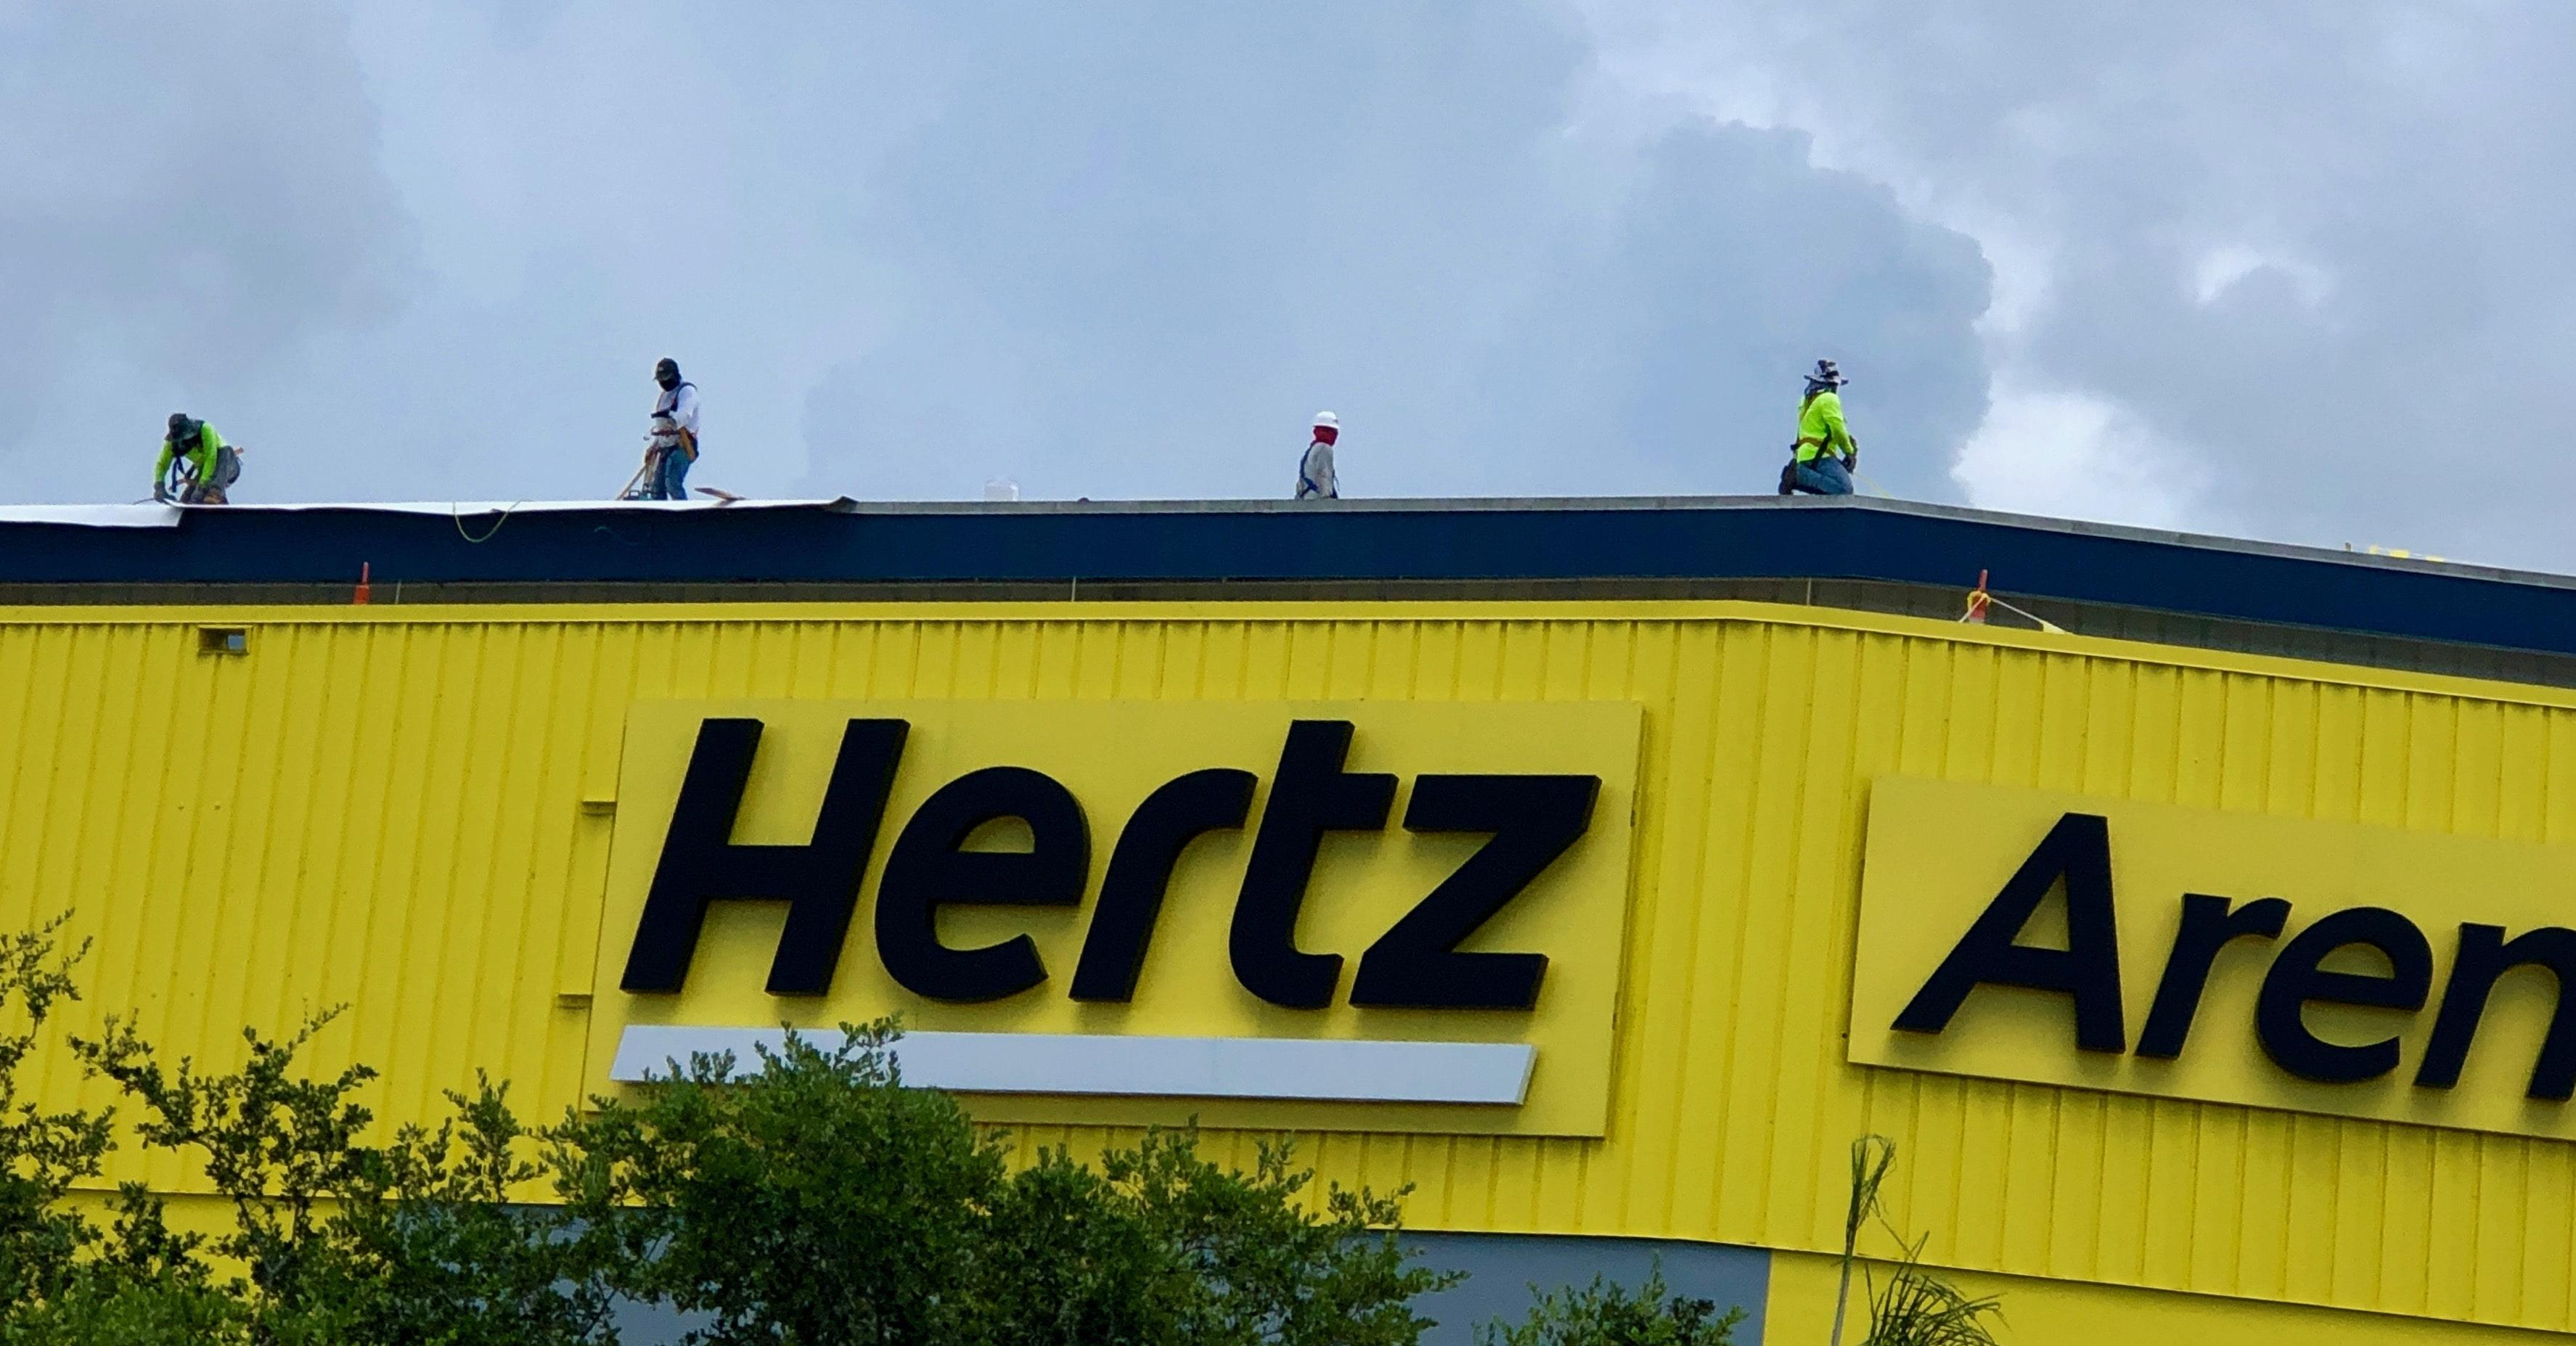 Re-roofing at Hertz Arena